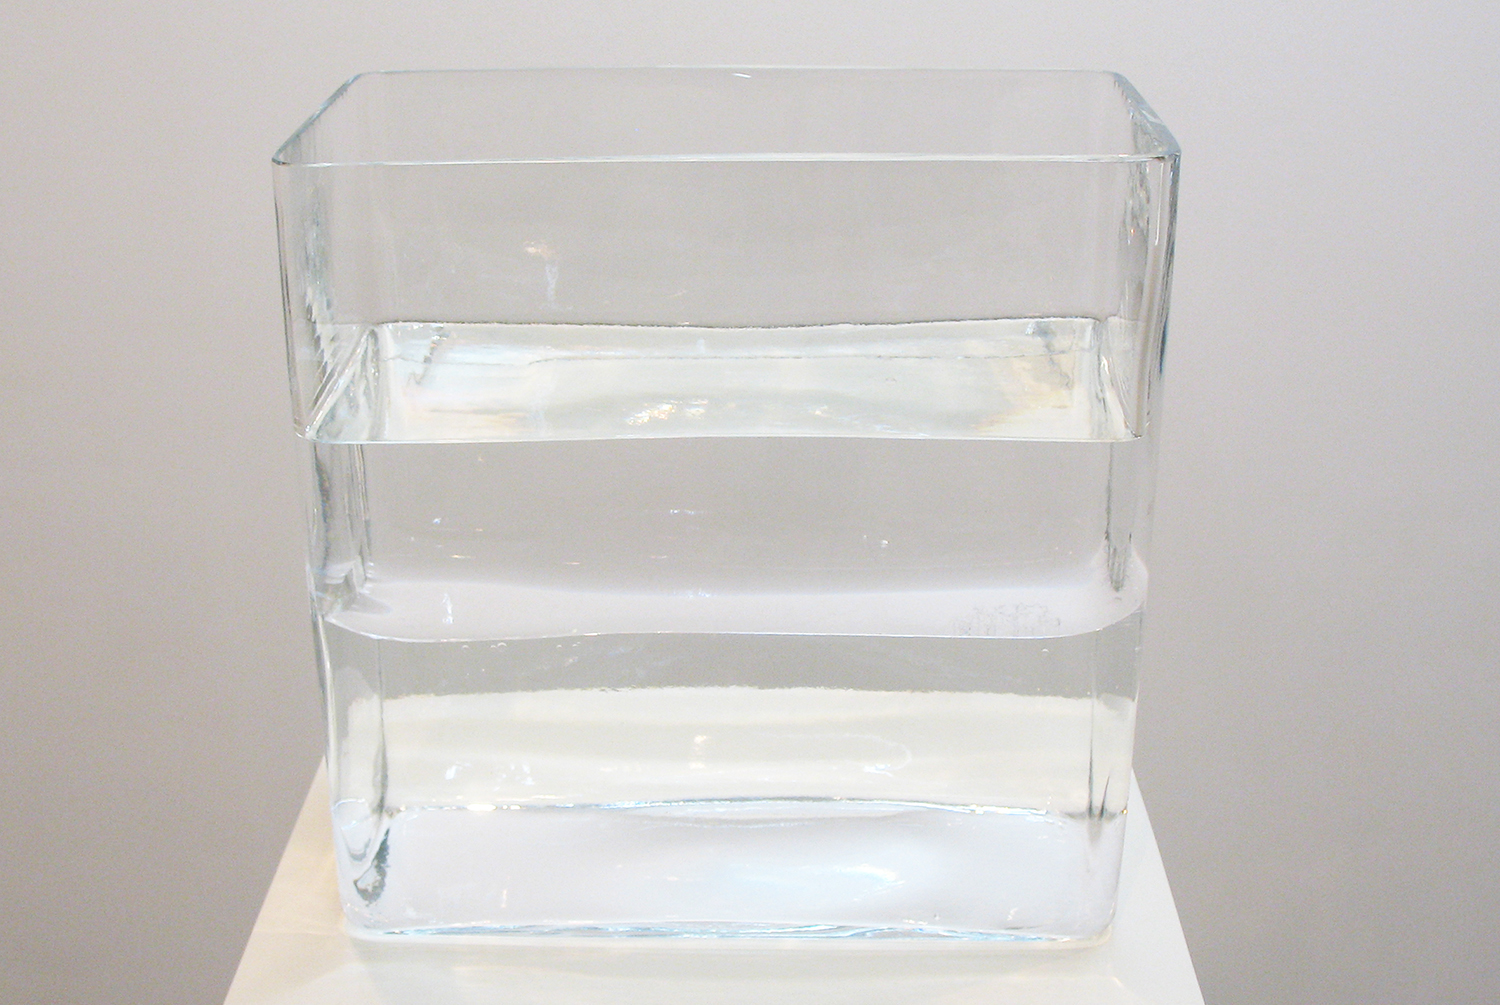 境界1|border 1<br>water, glass, windshield<br>245 x 245 x 120 mm pedestal: 300 x 300 x 1150 mm 2010